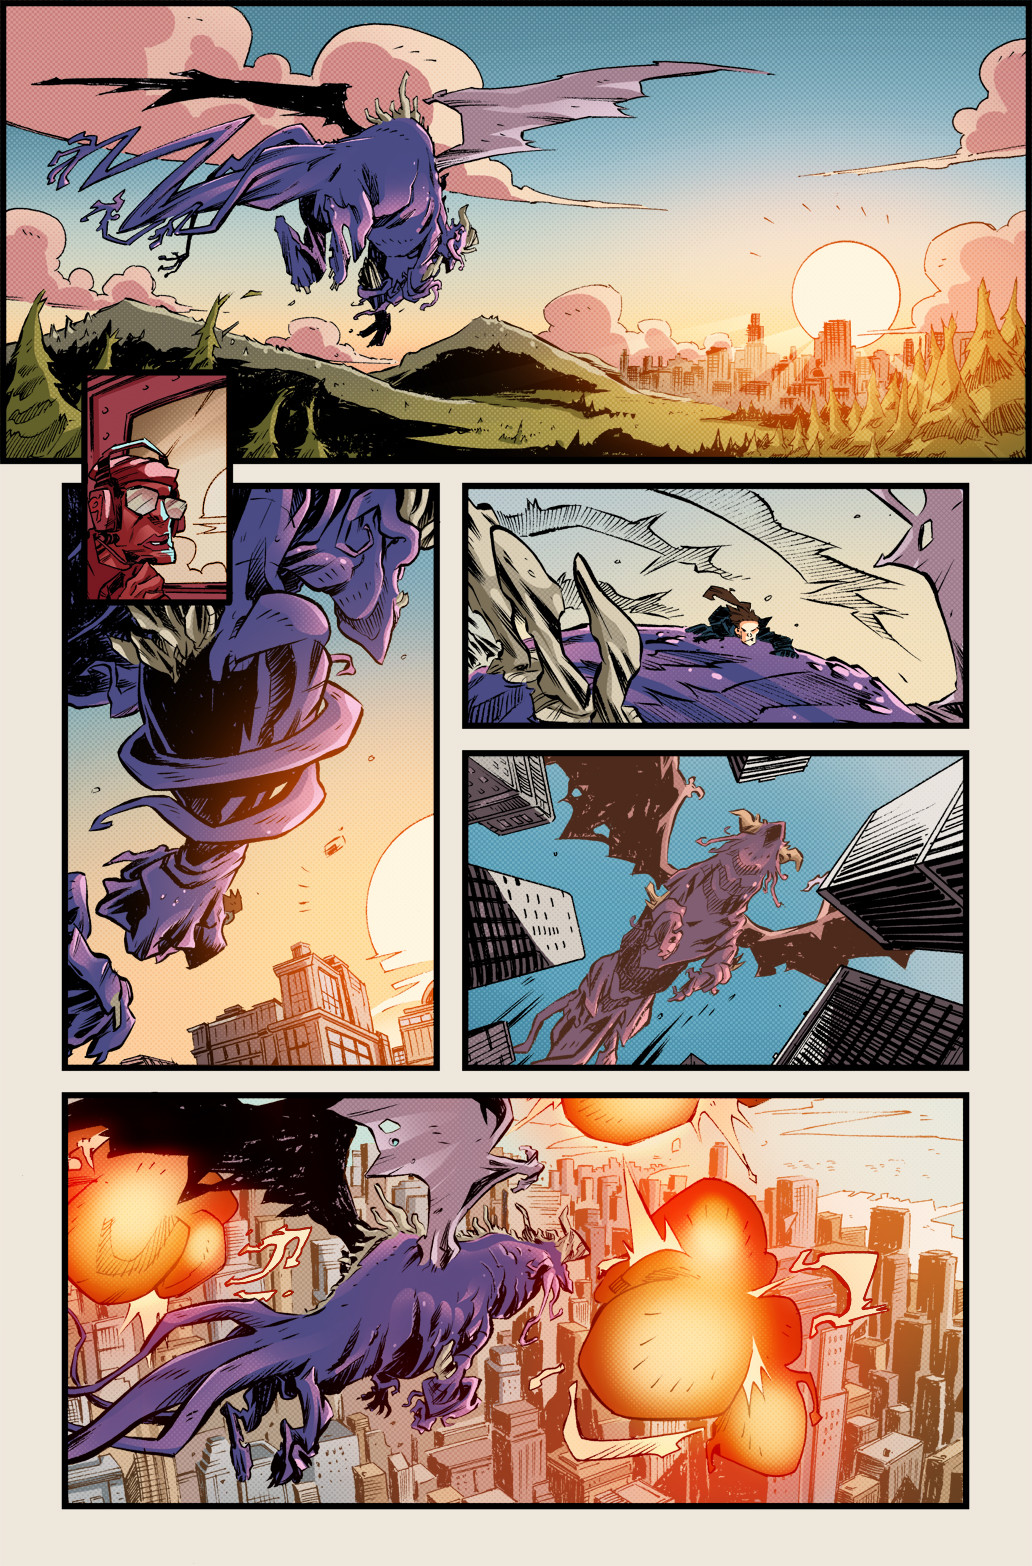 GONERS - #6, page 14